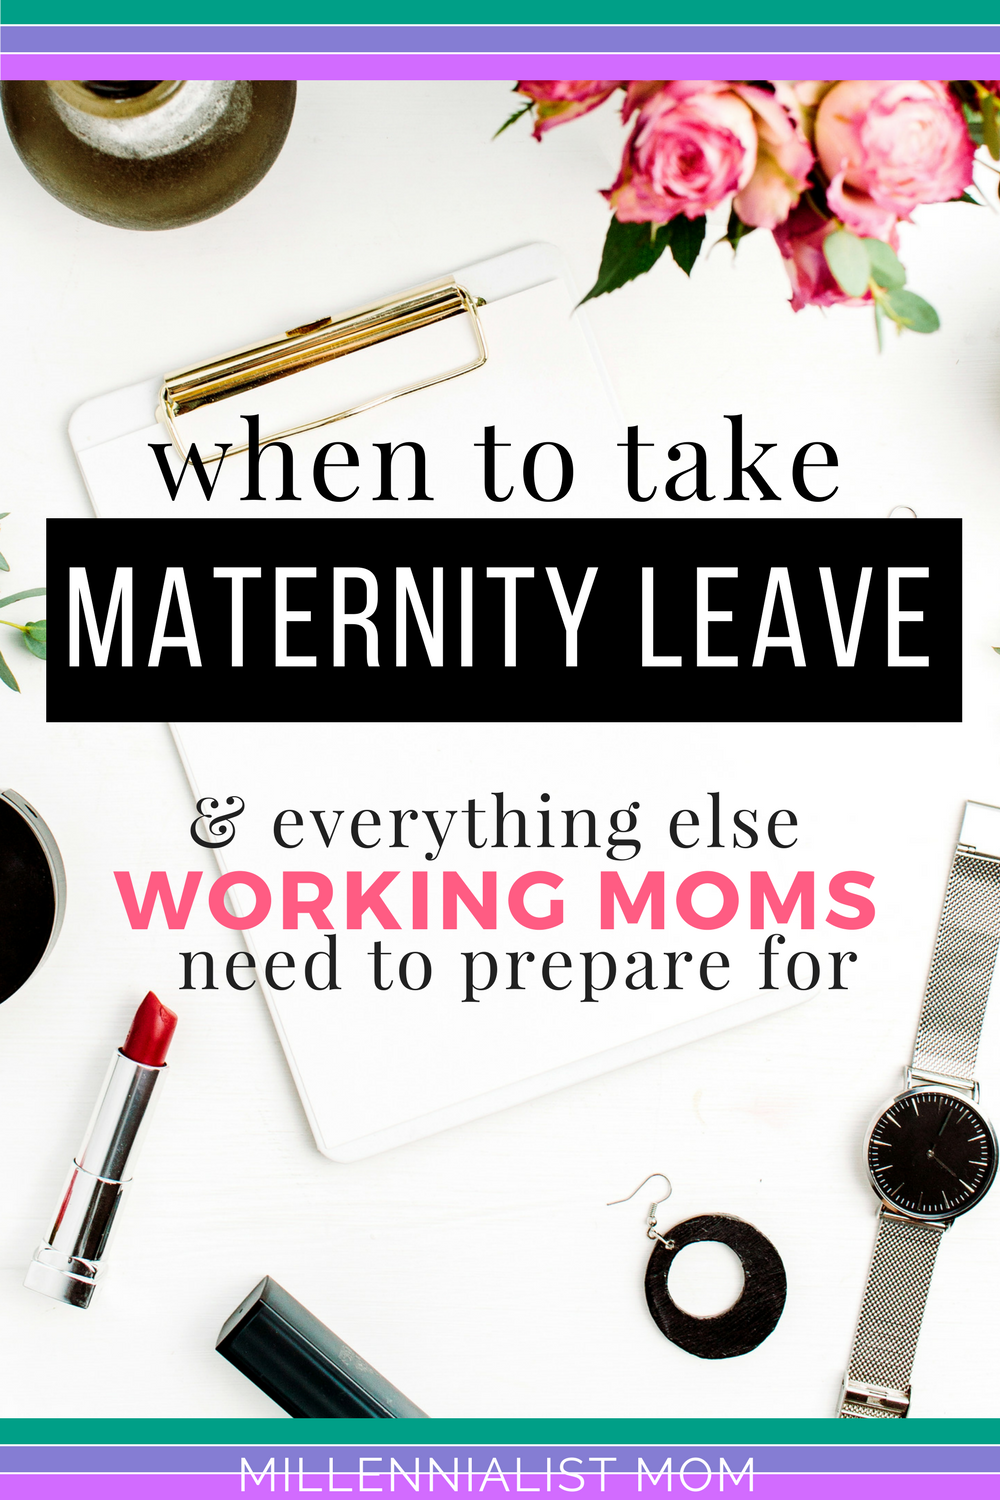 Getting ready to have a baby comes with a lot of preparation. This list will give #workingmoms everything they need to prepare for at work. The professional pregnancy has HR, corporate policies, FMLA, and dozens of crap to deal with. And since you're #makingmoney you need to take that into consideration. Learn when to take maternity leave and everything else working moms need to prepare for